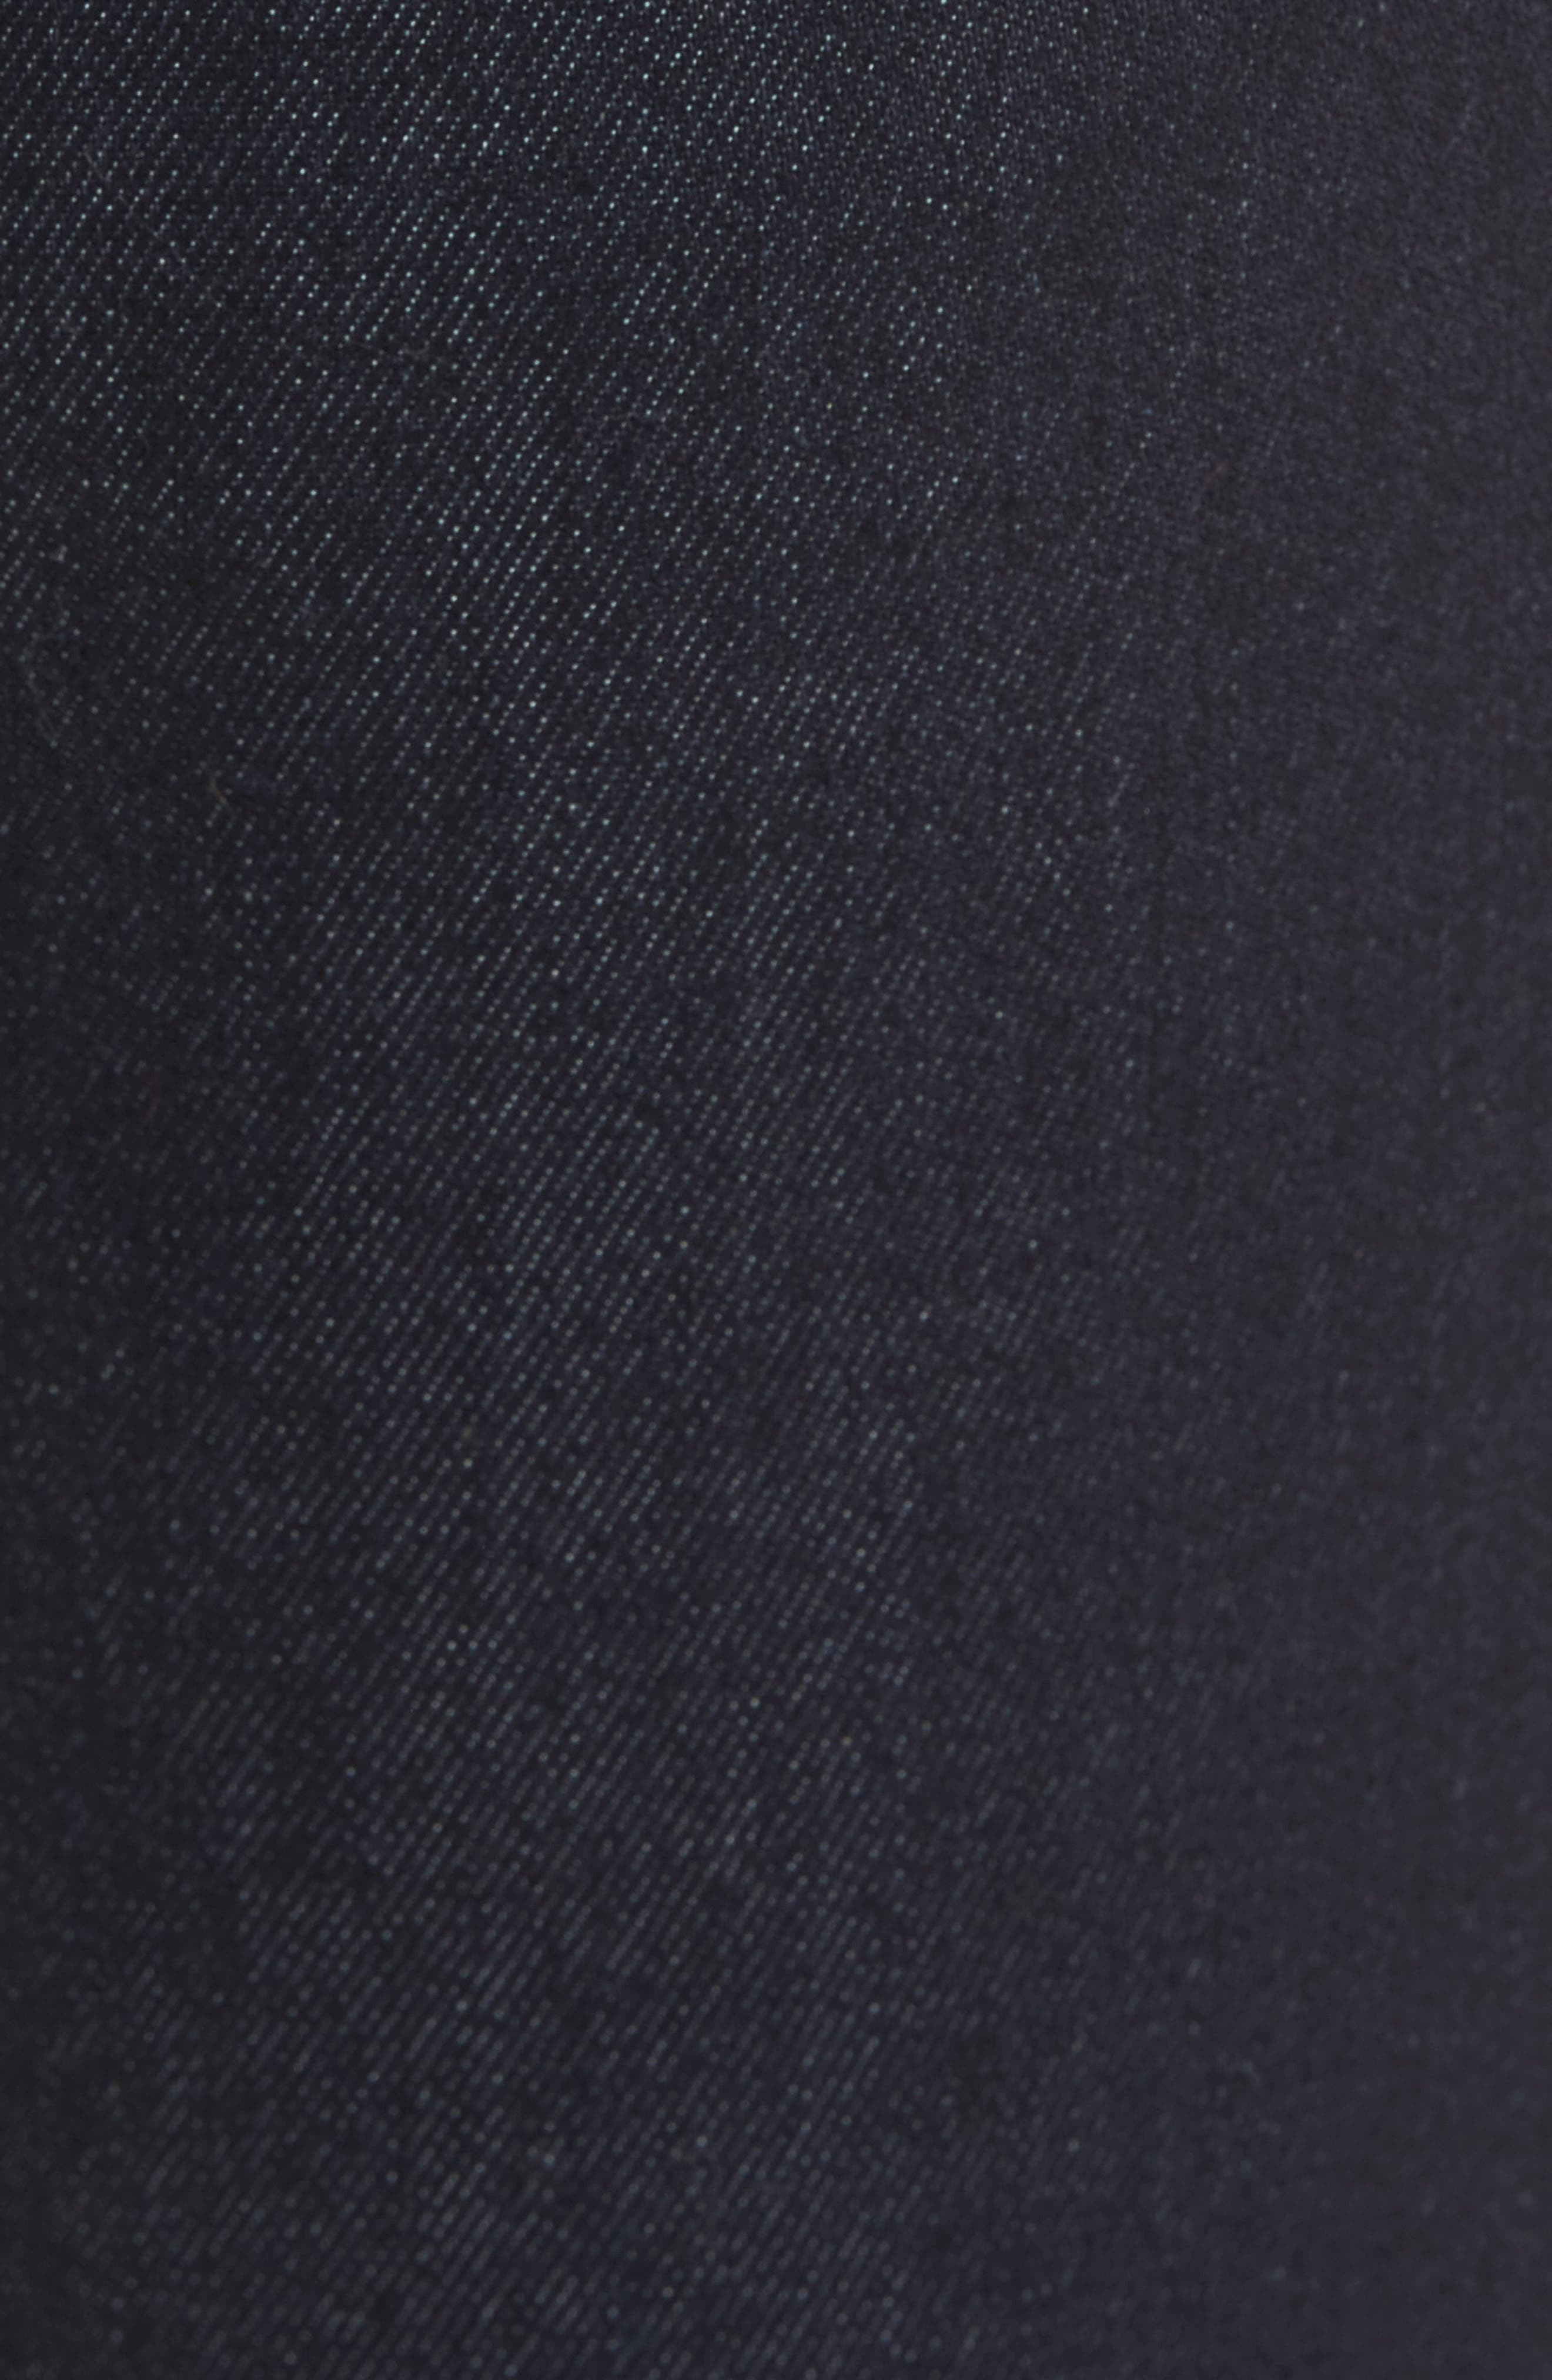 Sonic Skinny Fit Jeans,                             Alternate thumbnail 5, color,                             402